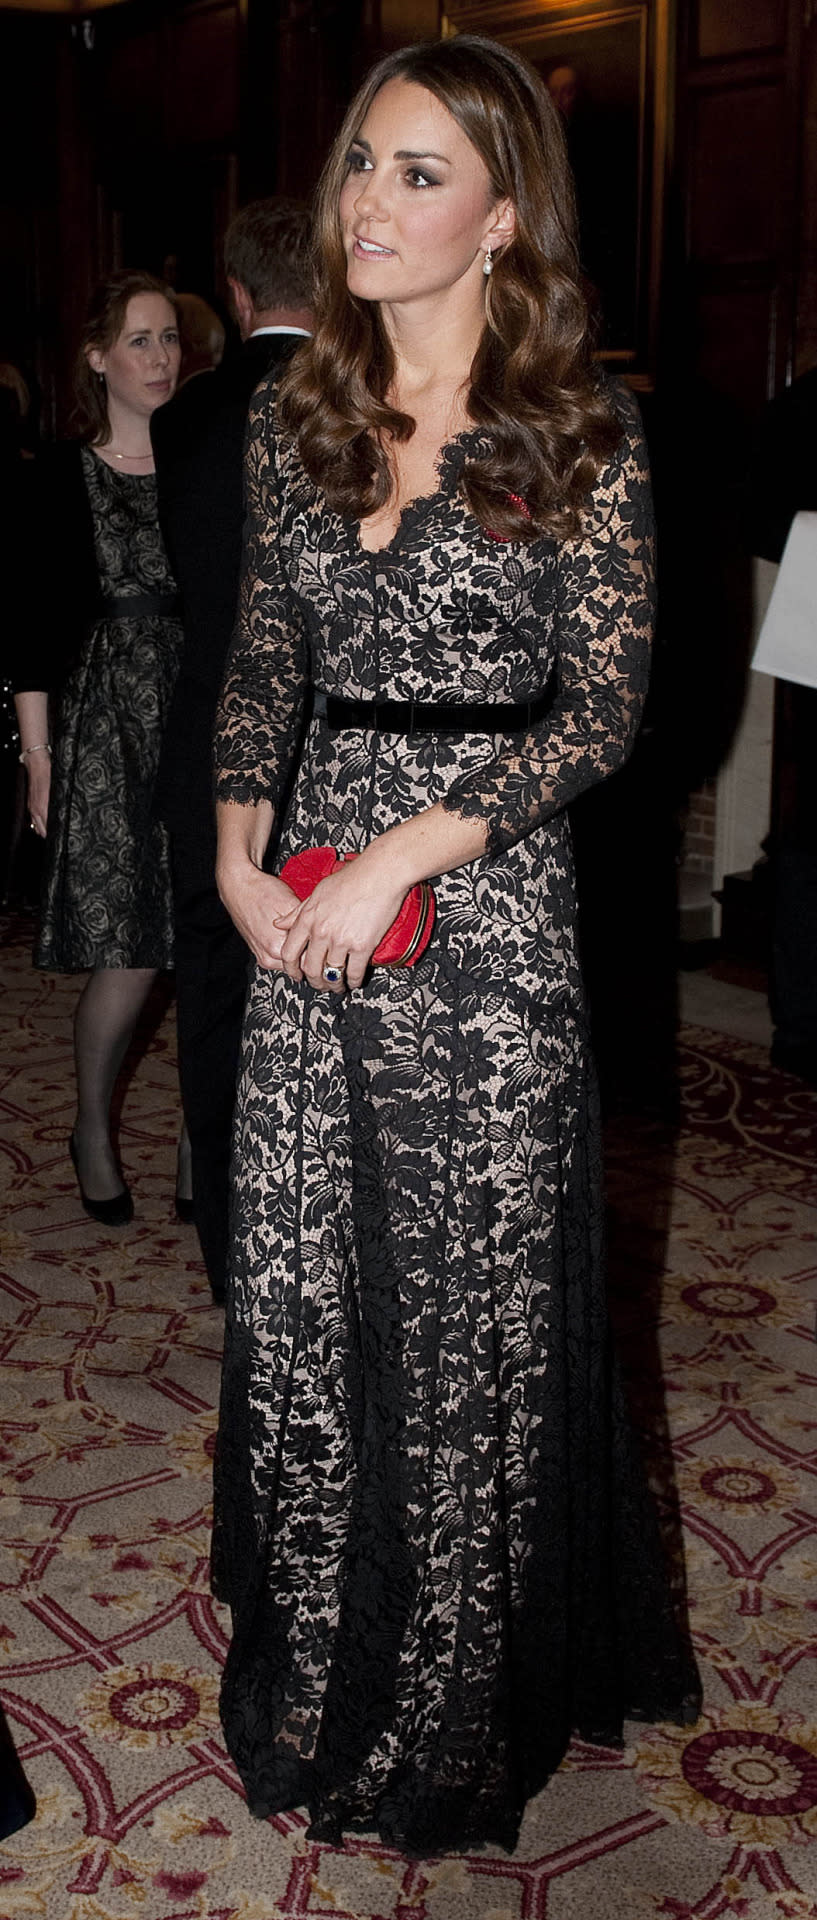 <p>The Duchess went back to St Andrews University for a dinner wearing a gorgeous nude-and-black lace gown by Temperley London. She carried a red Alexander McQueen box clutch and finished with suede Jimmy Choos.</p><p><i>[Photo: PA]</i></p>